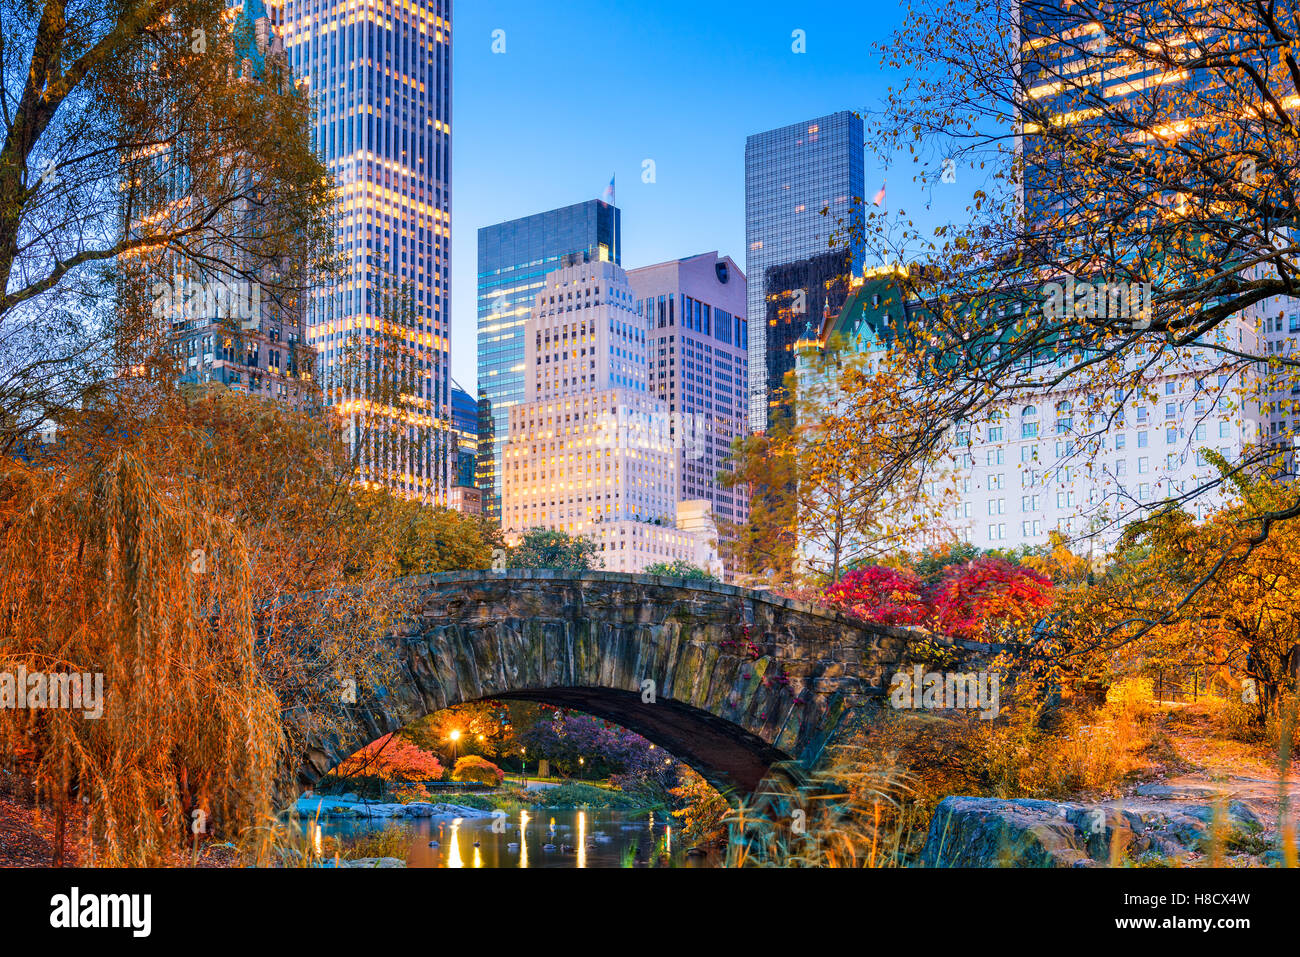 Central Park im Herbst in New York City. Stockbild